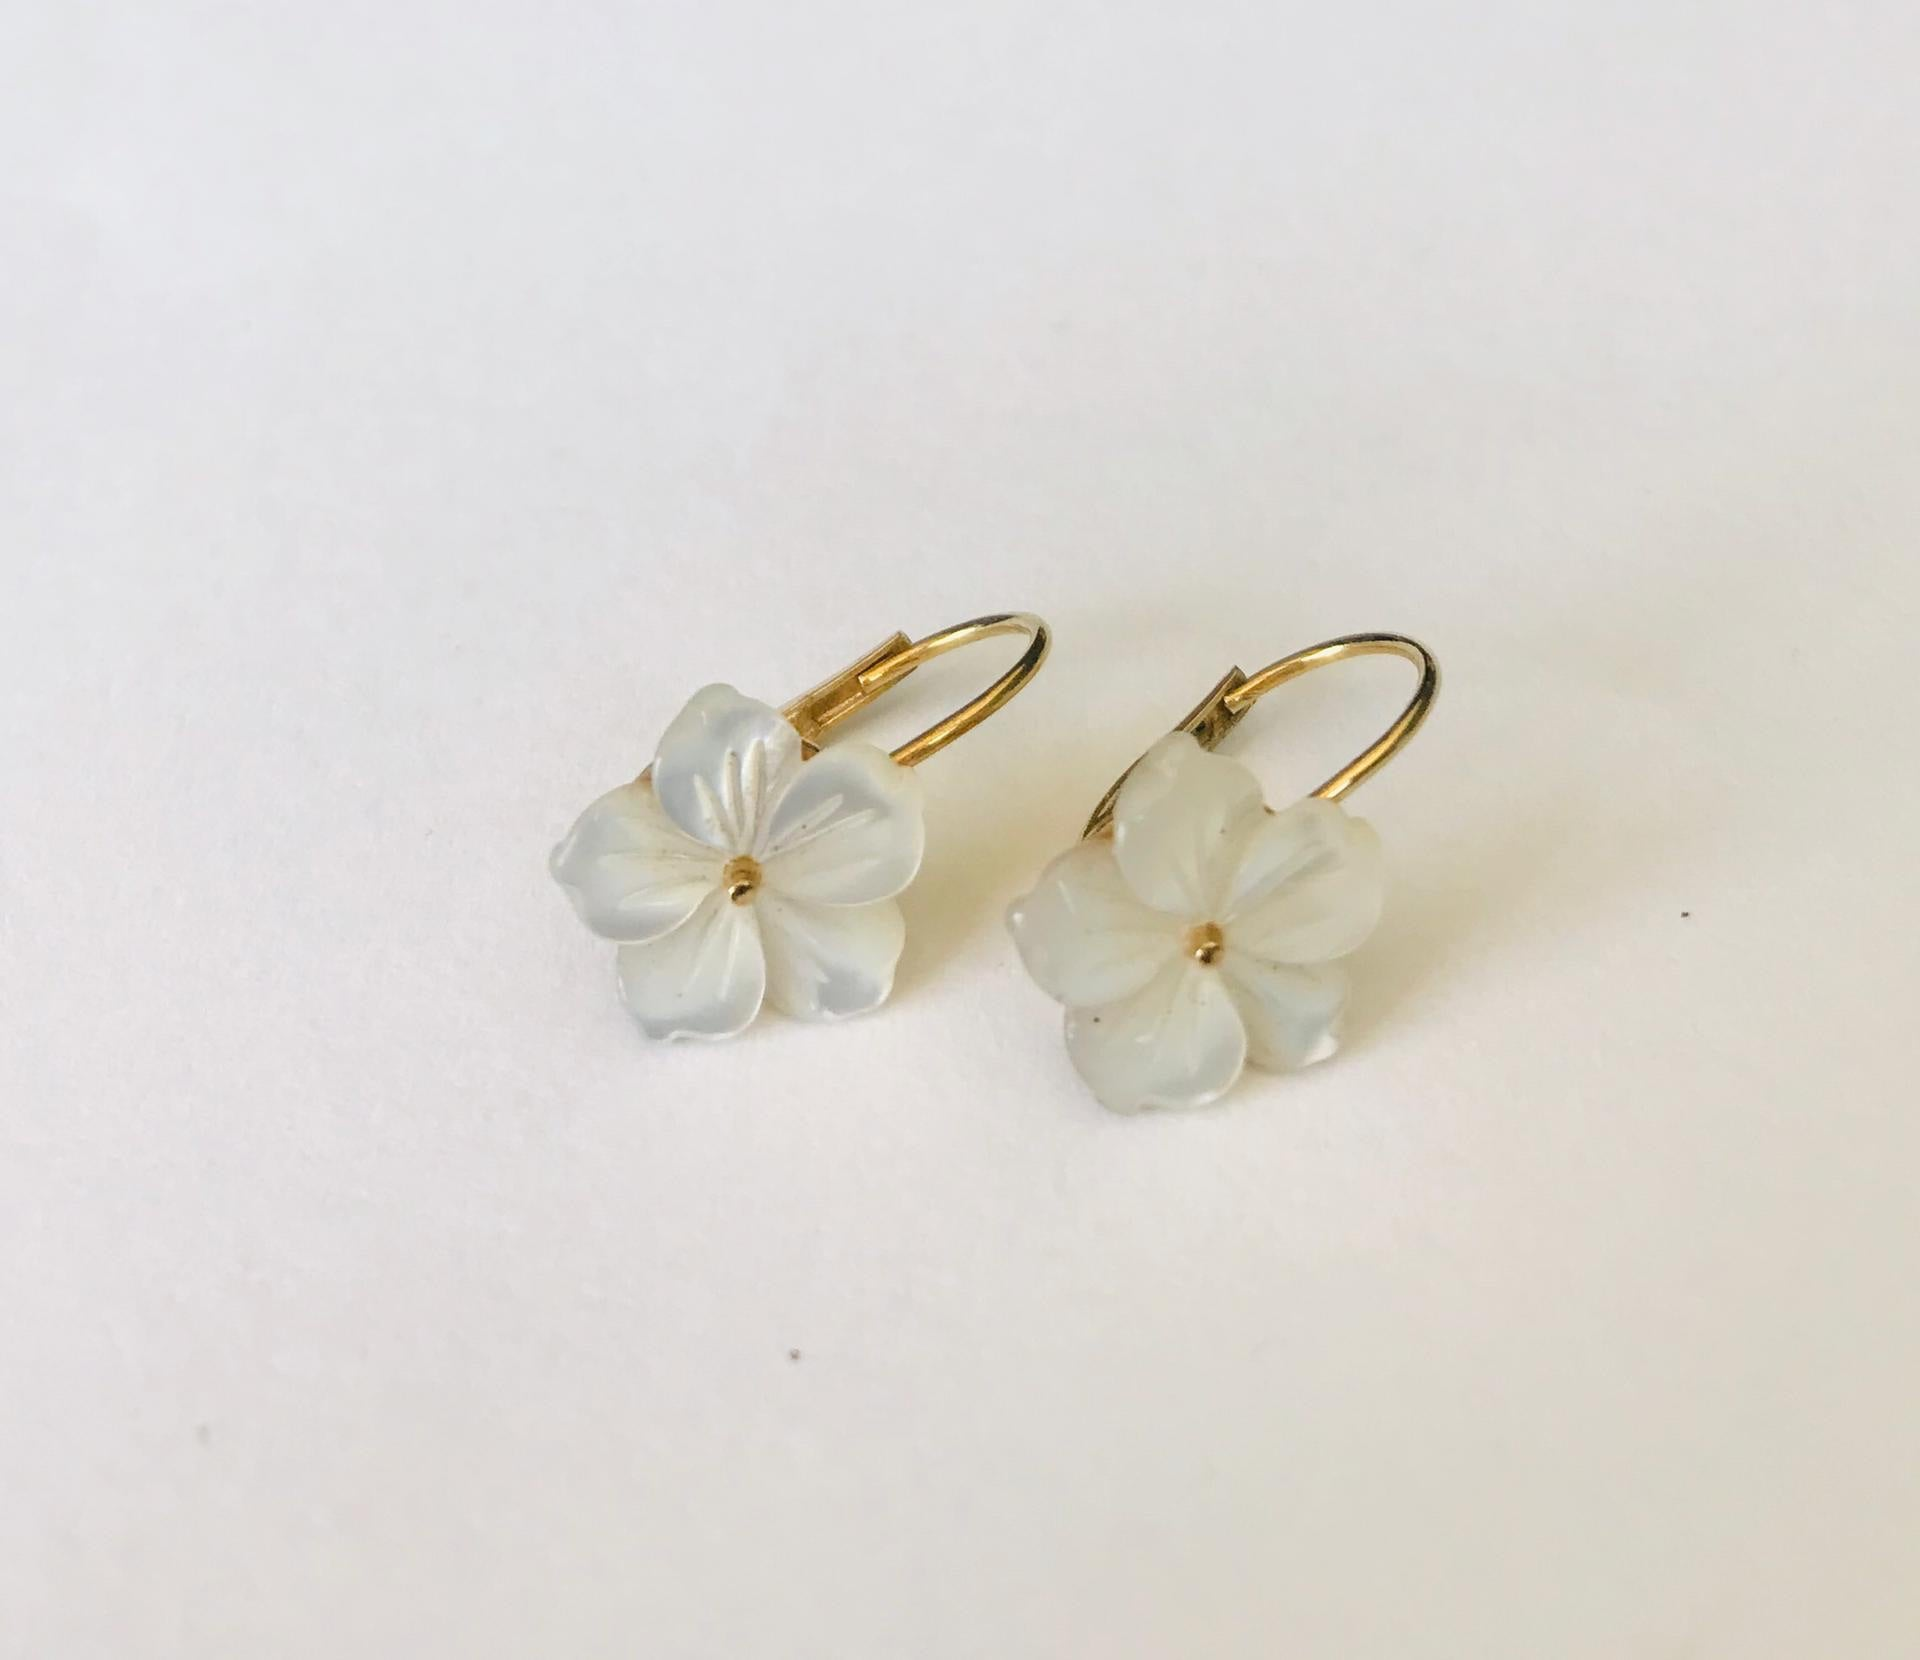 Wouters & Hendrix - gold plated earrings with mother of pearl flower